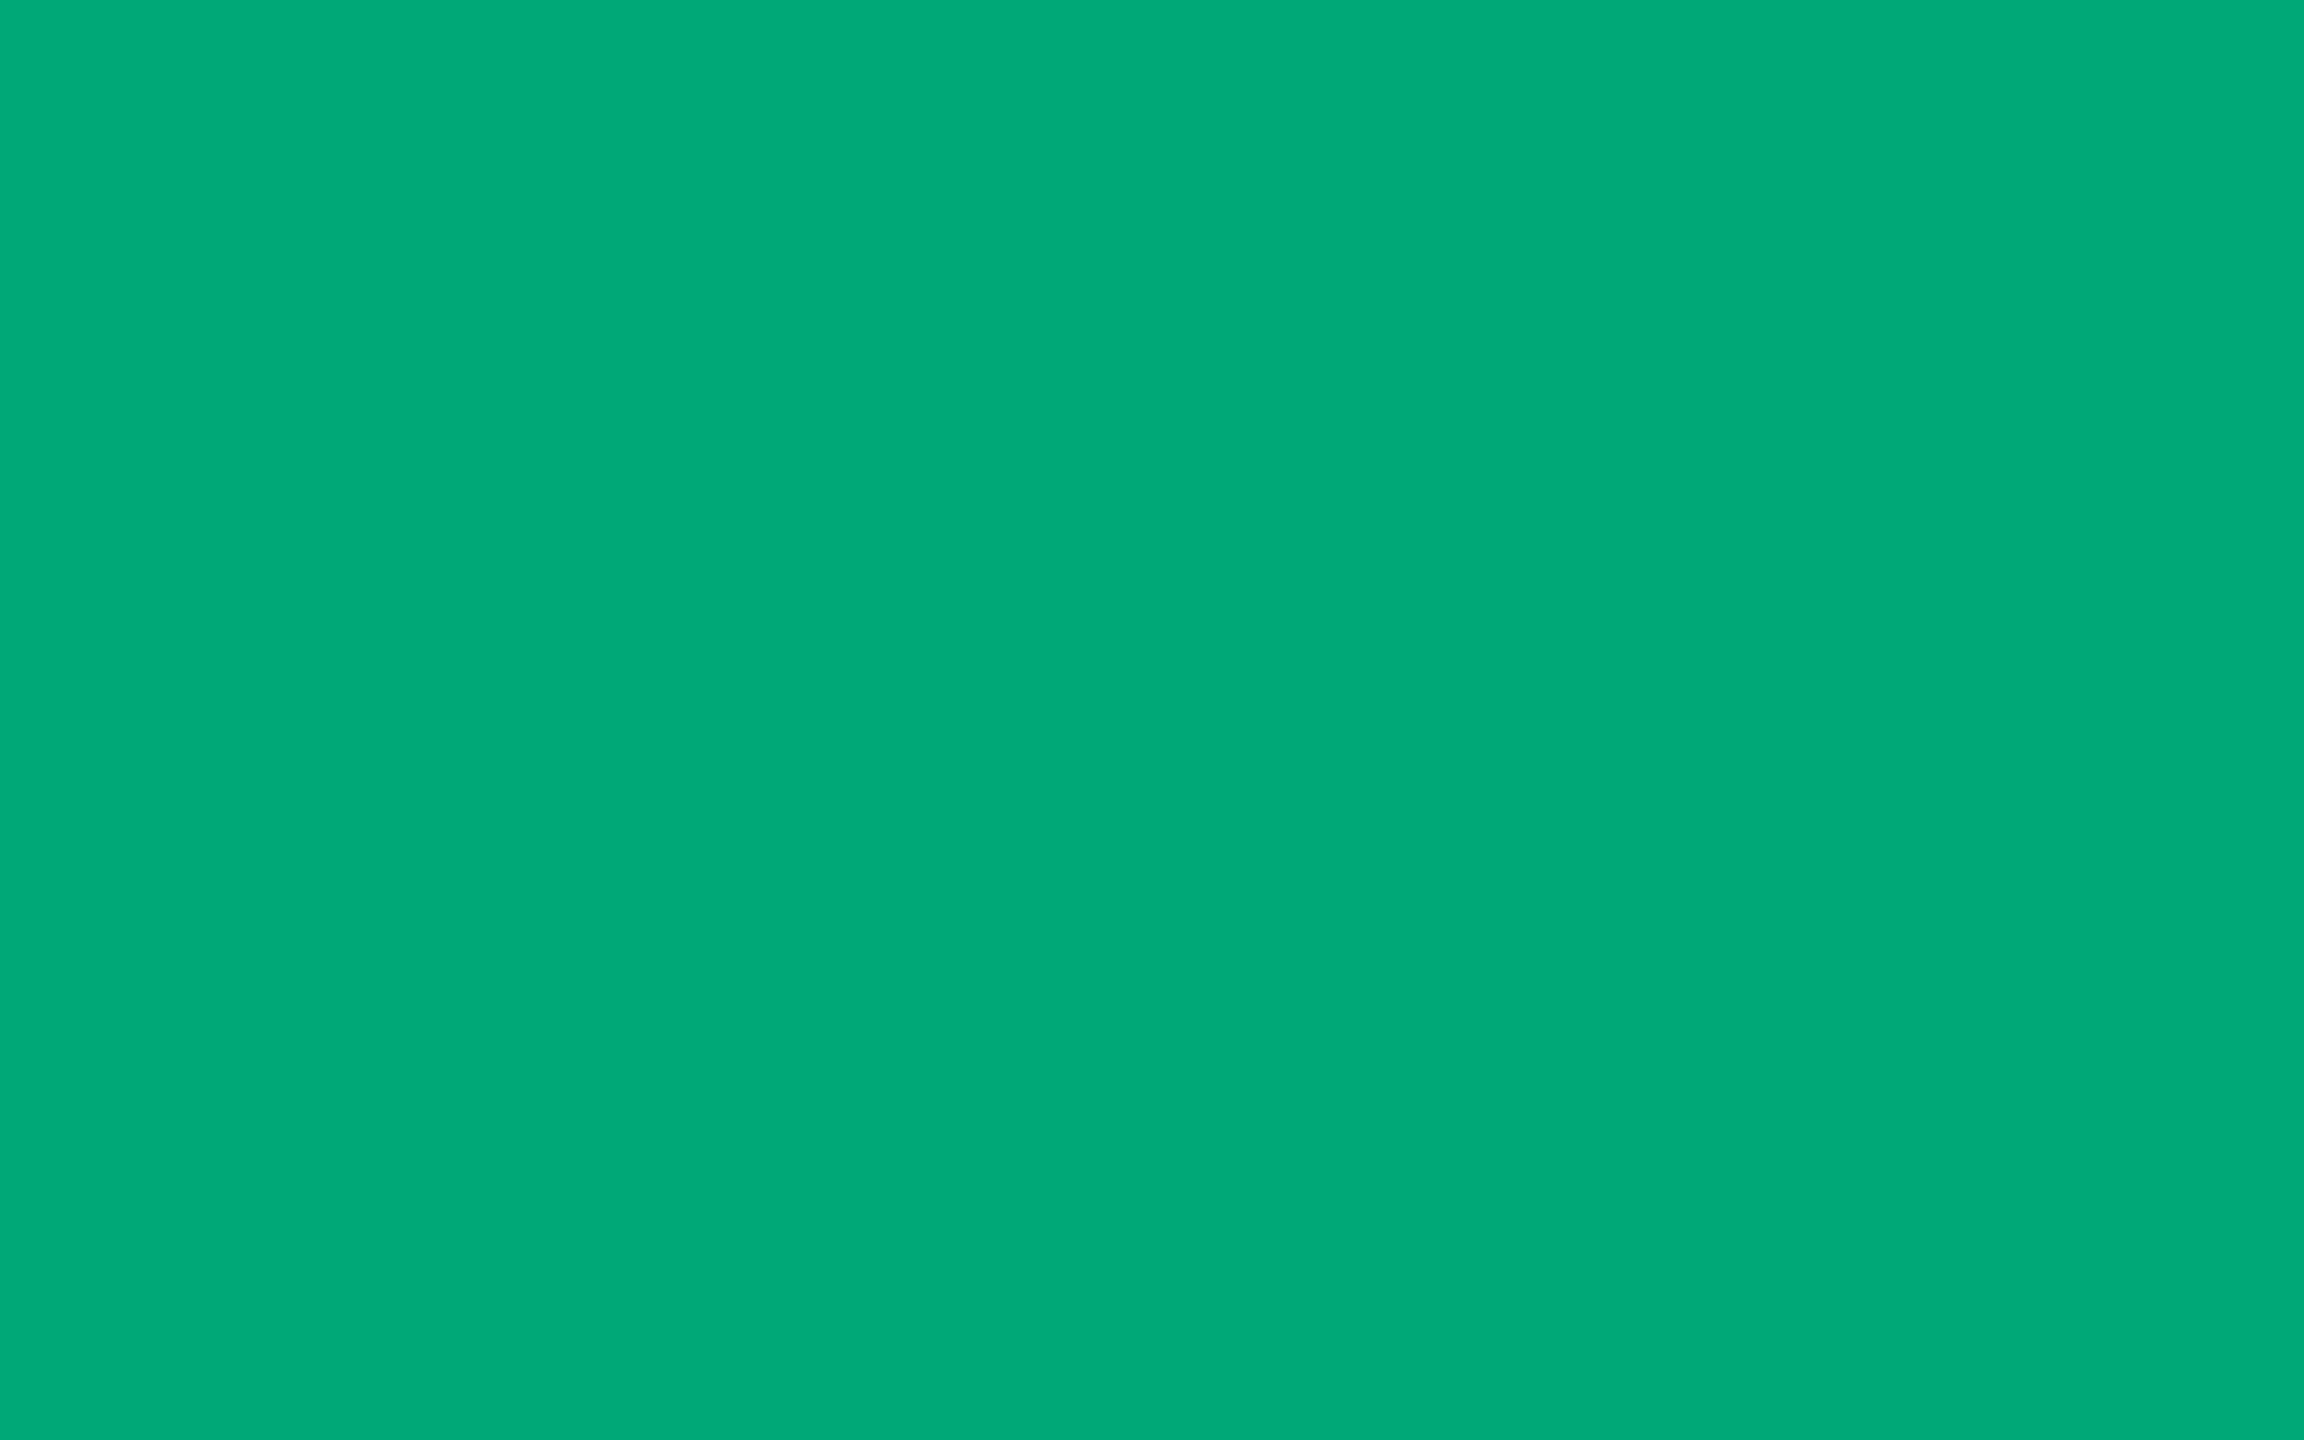 2304x1440 Green Munsell Solid Color Background